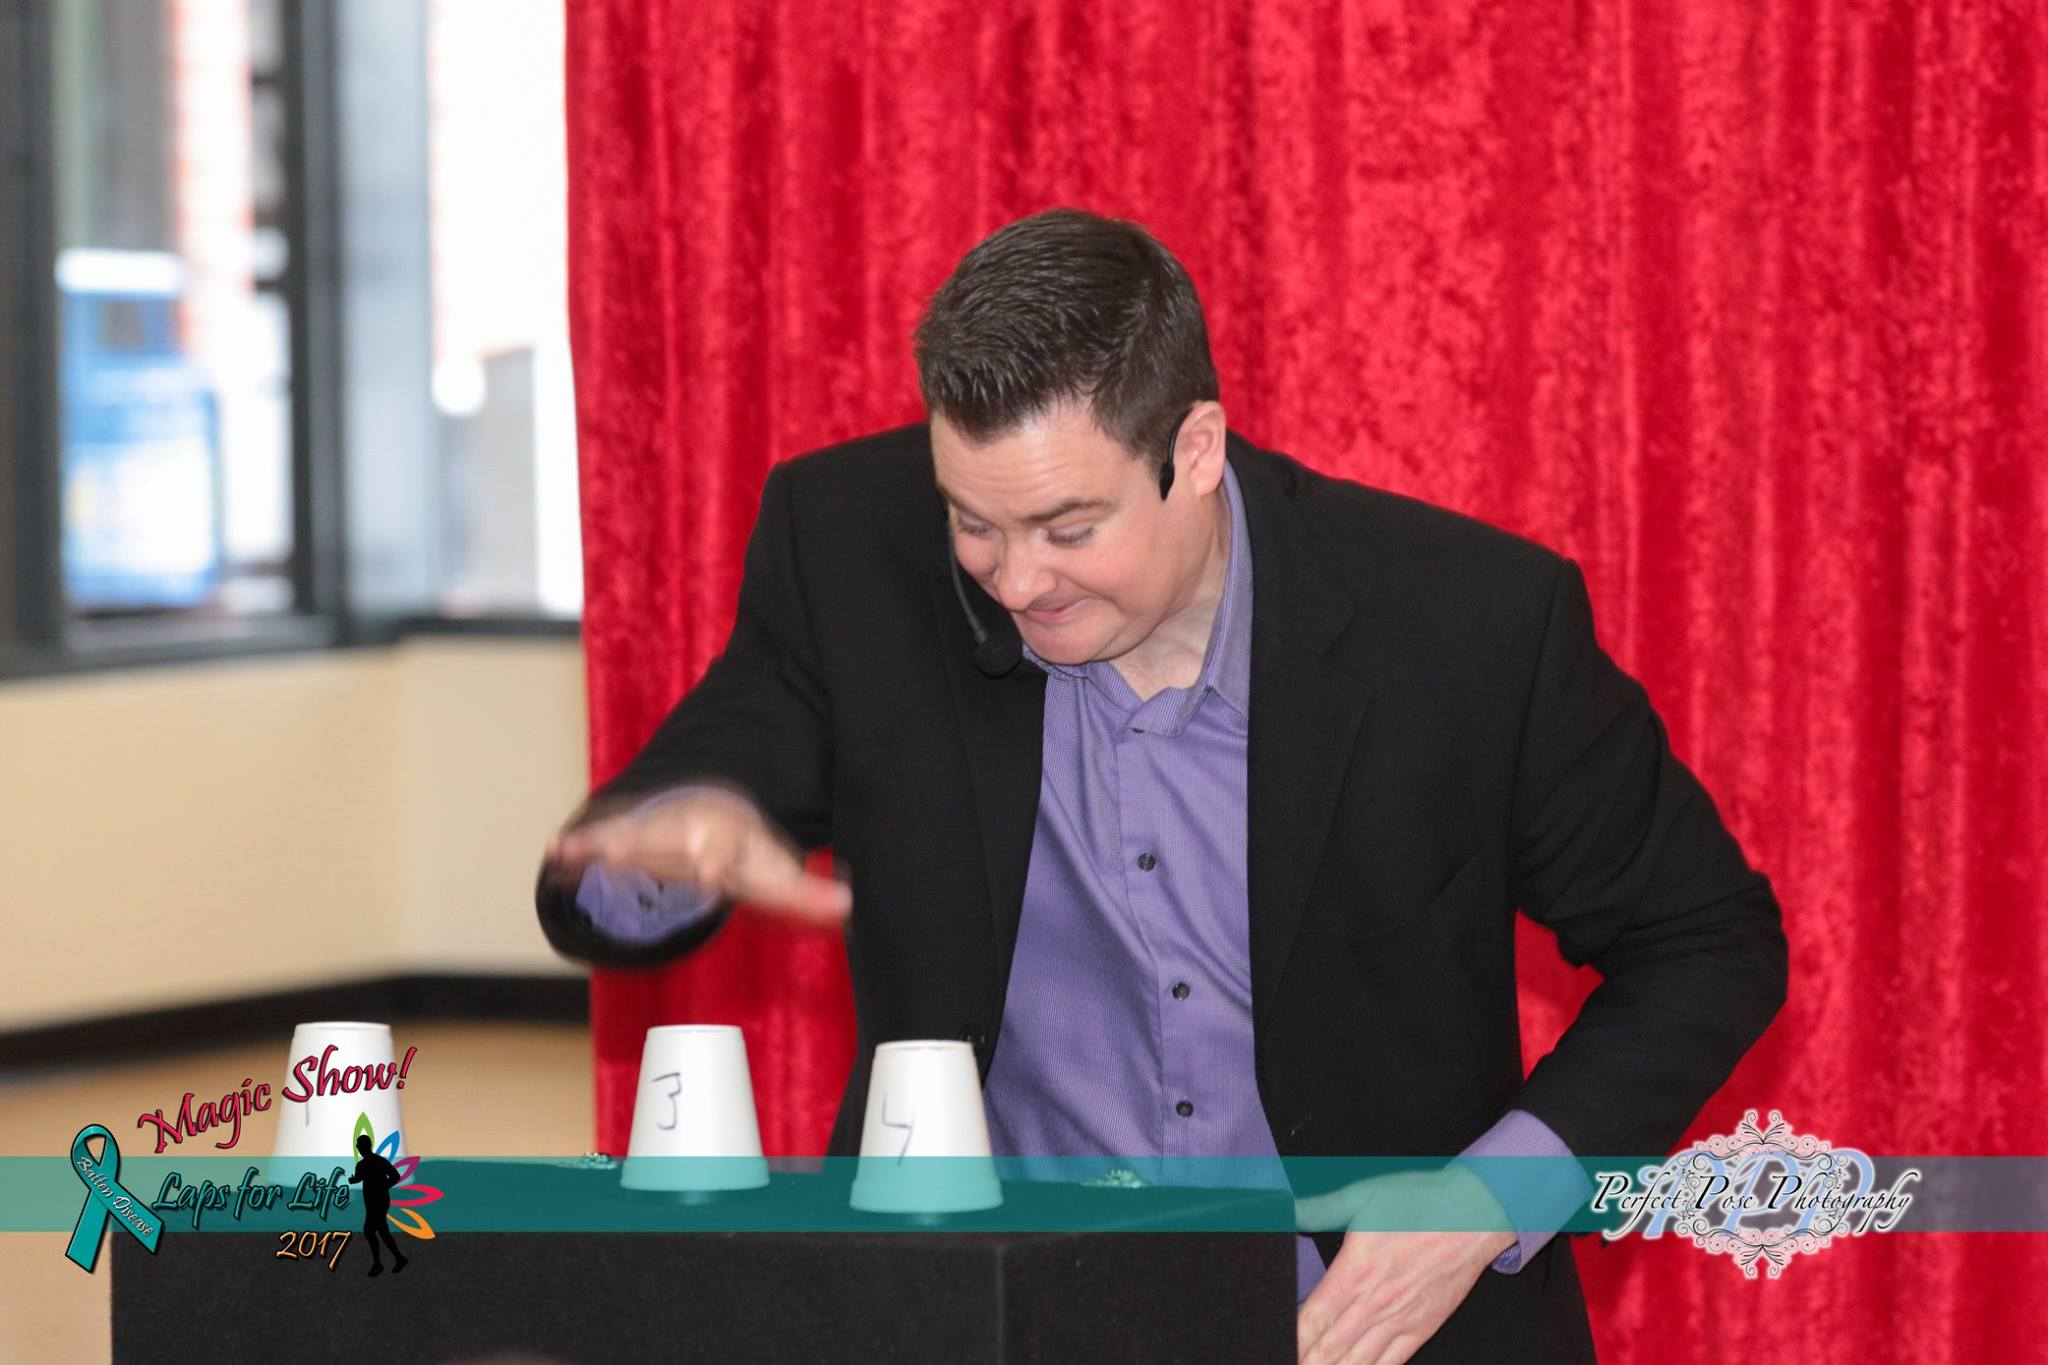 Magic show fundraisers